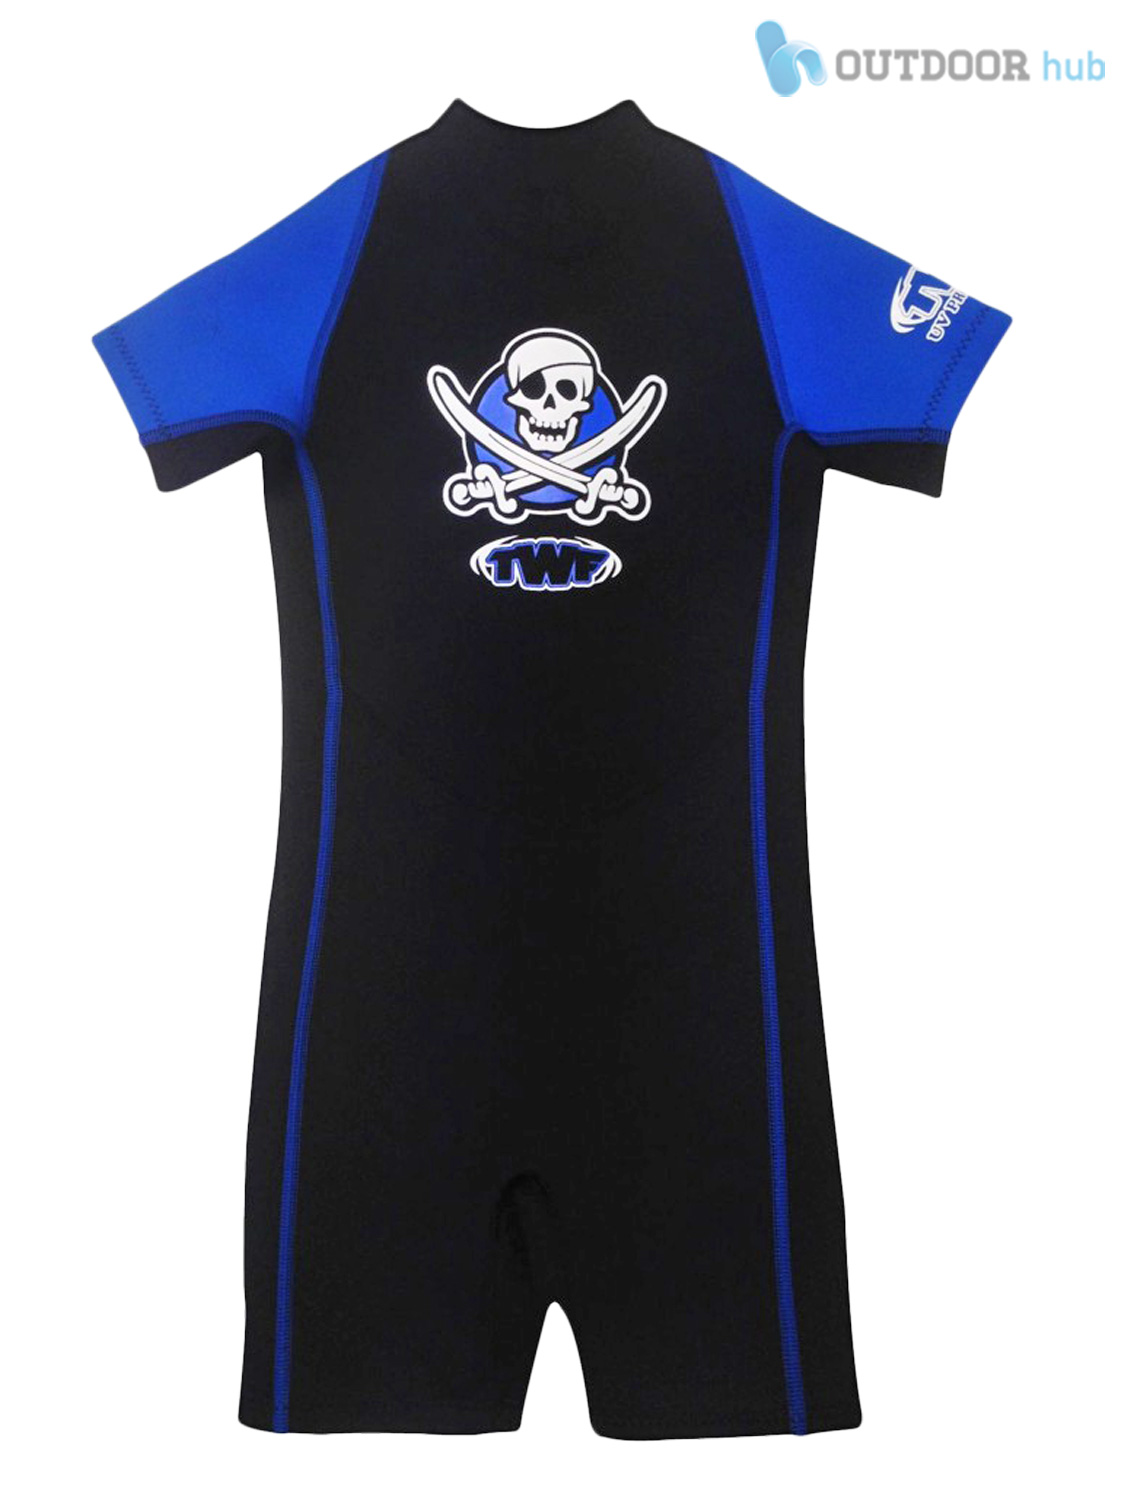 TWF-2mm-Kids-Shortie-Wetsuit-Childs-Shorty-Boys-Girls-Beach-Swim-Baby-Toddler thumbnail 7